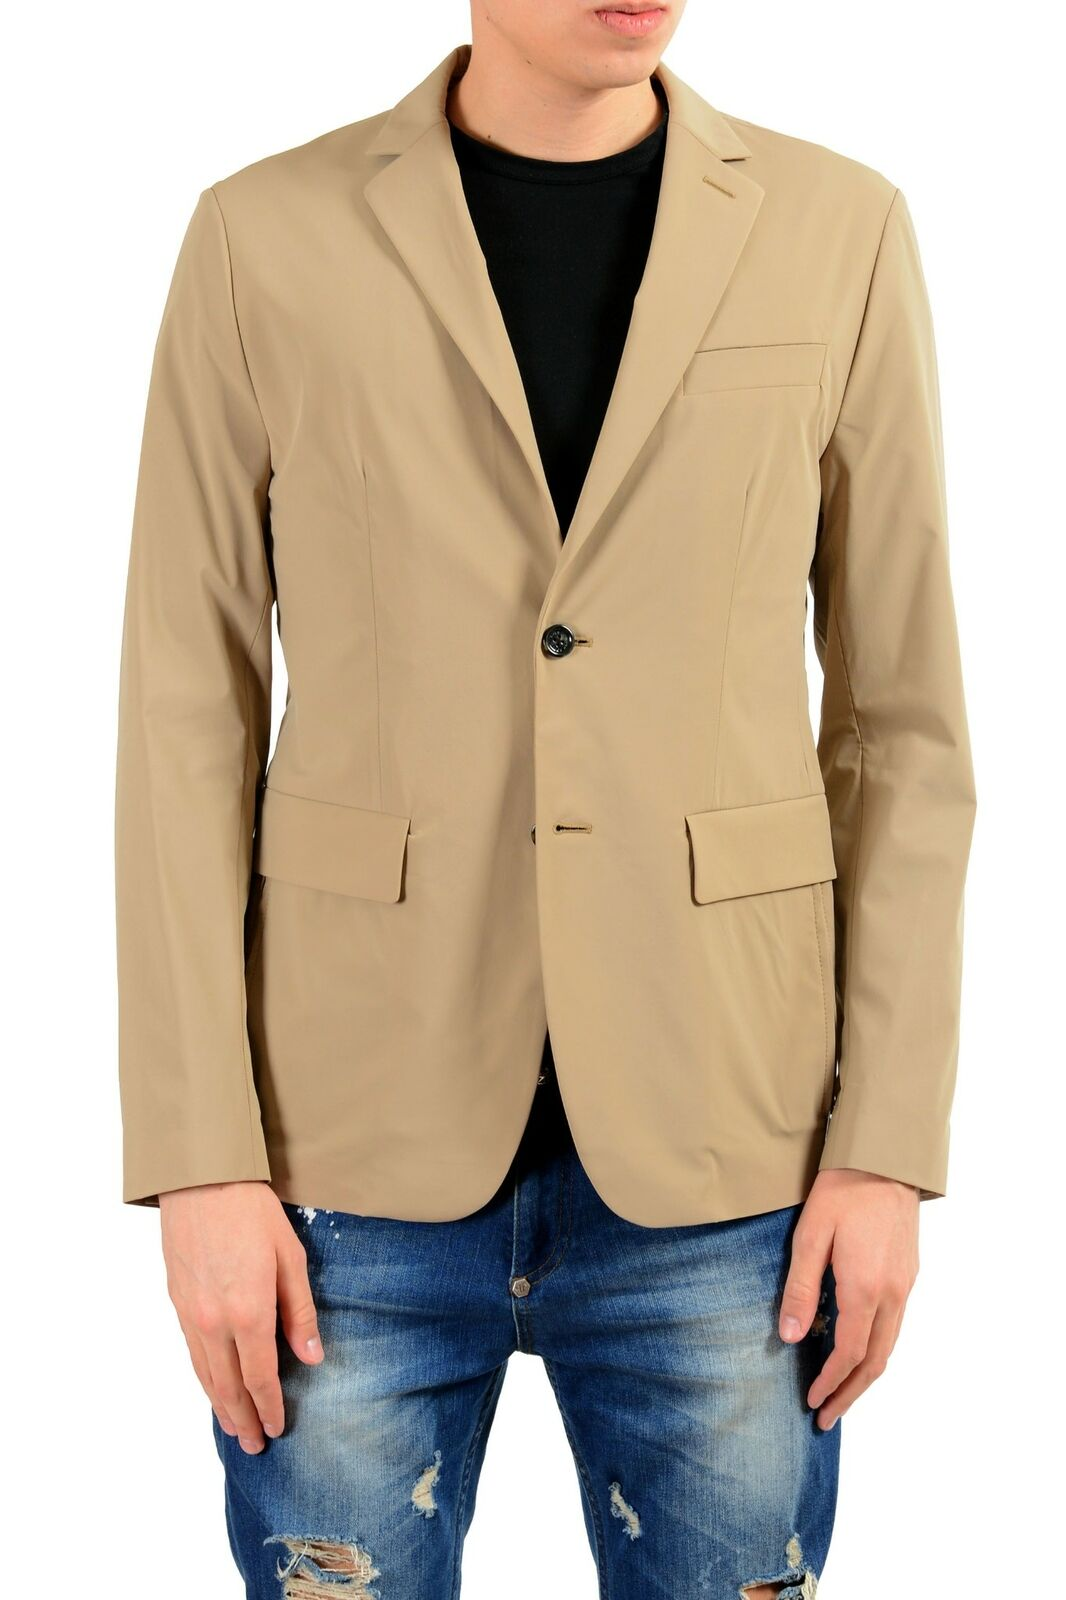 Hugo Boss Zoll Nelton Herren Wasserabweisend Beige Blazer Sport Mantel Us 38r It   | Wirtschaft